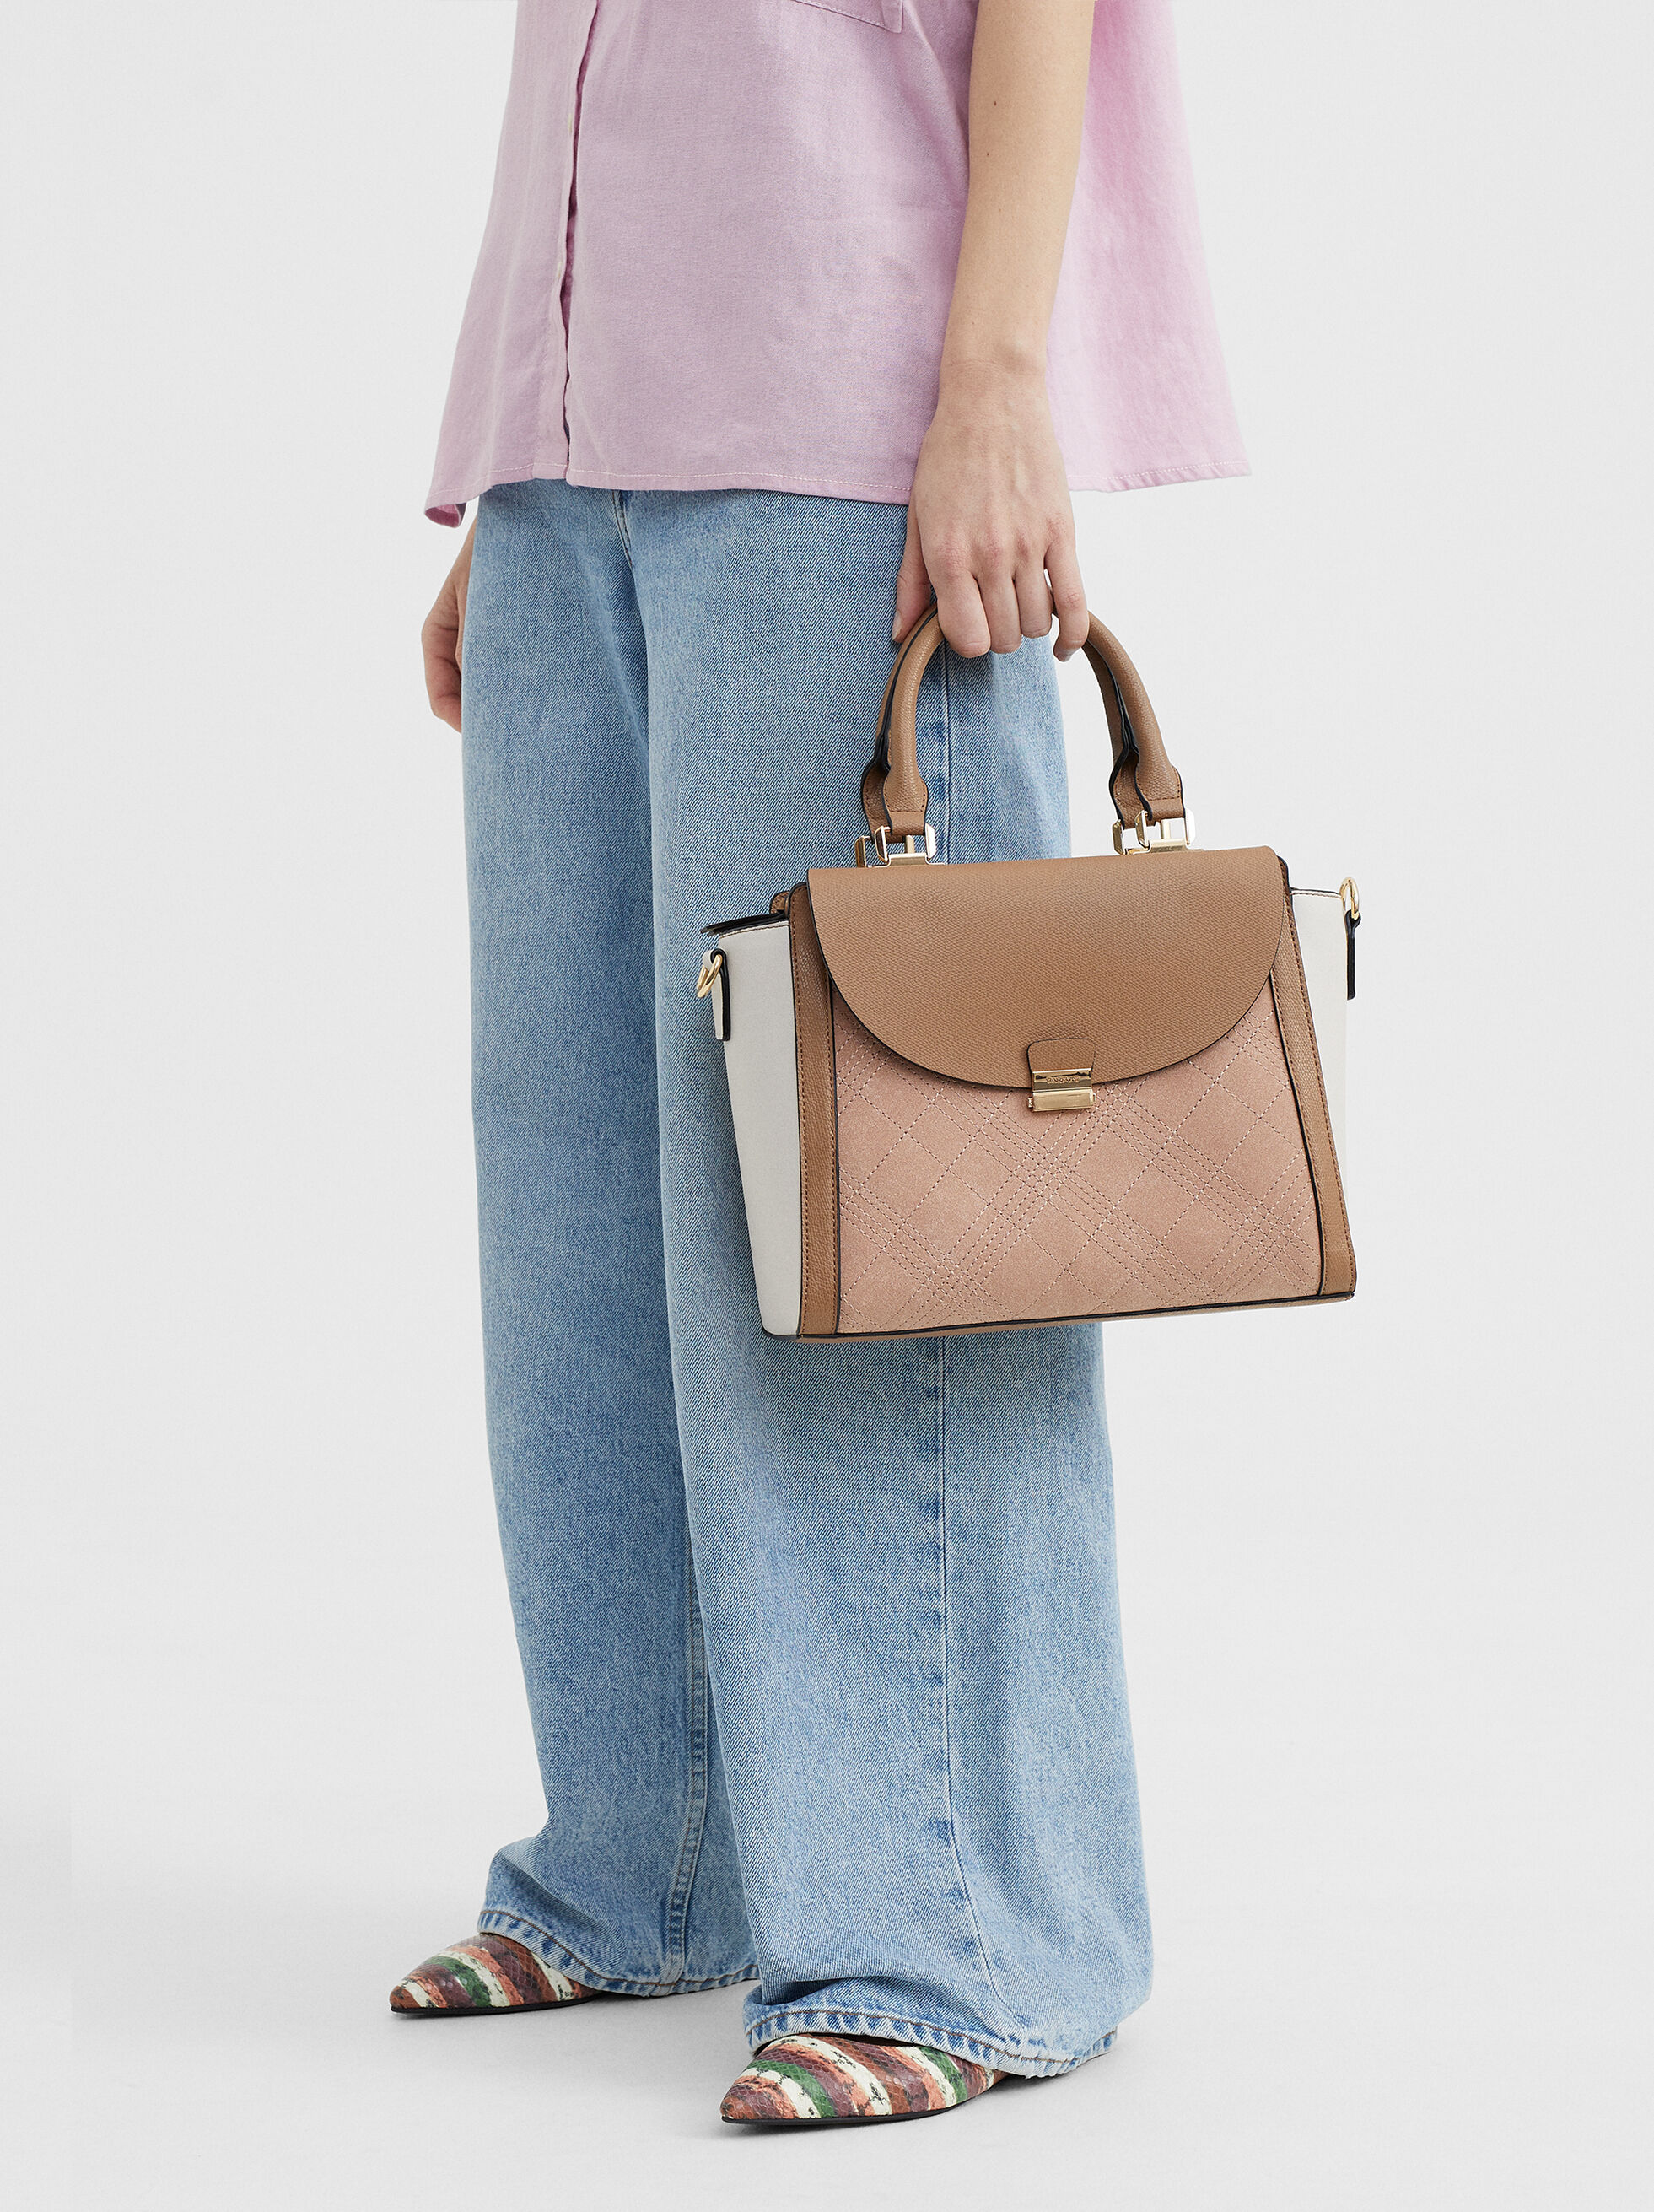 Tote Bag With Topstitching, Pink, hi-res